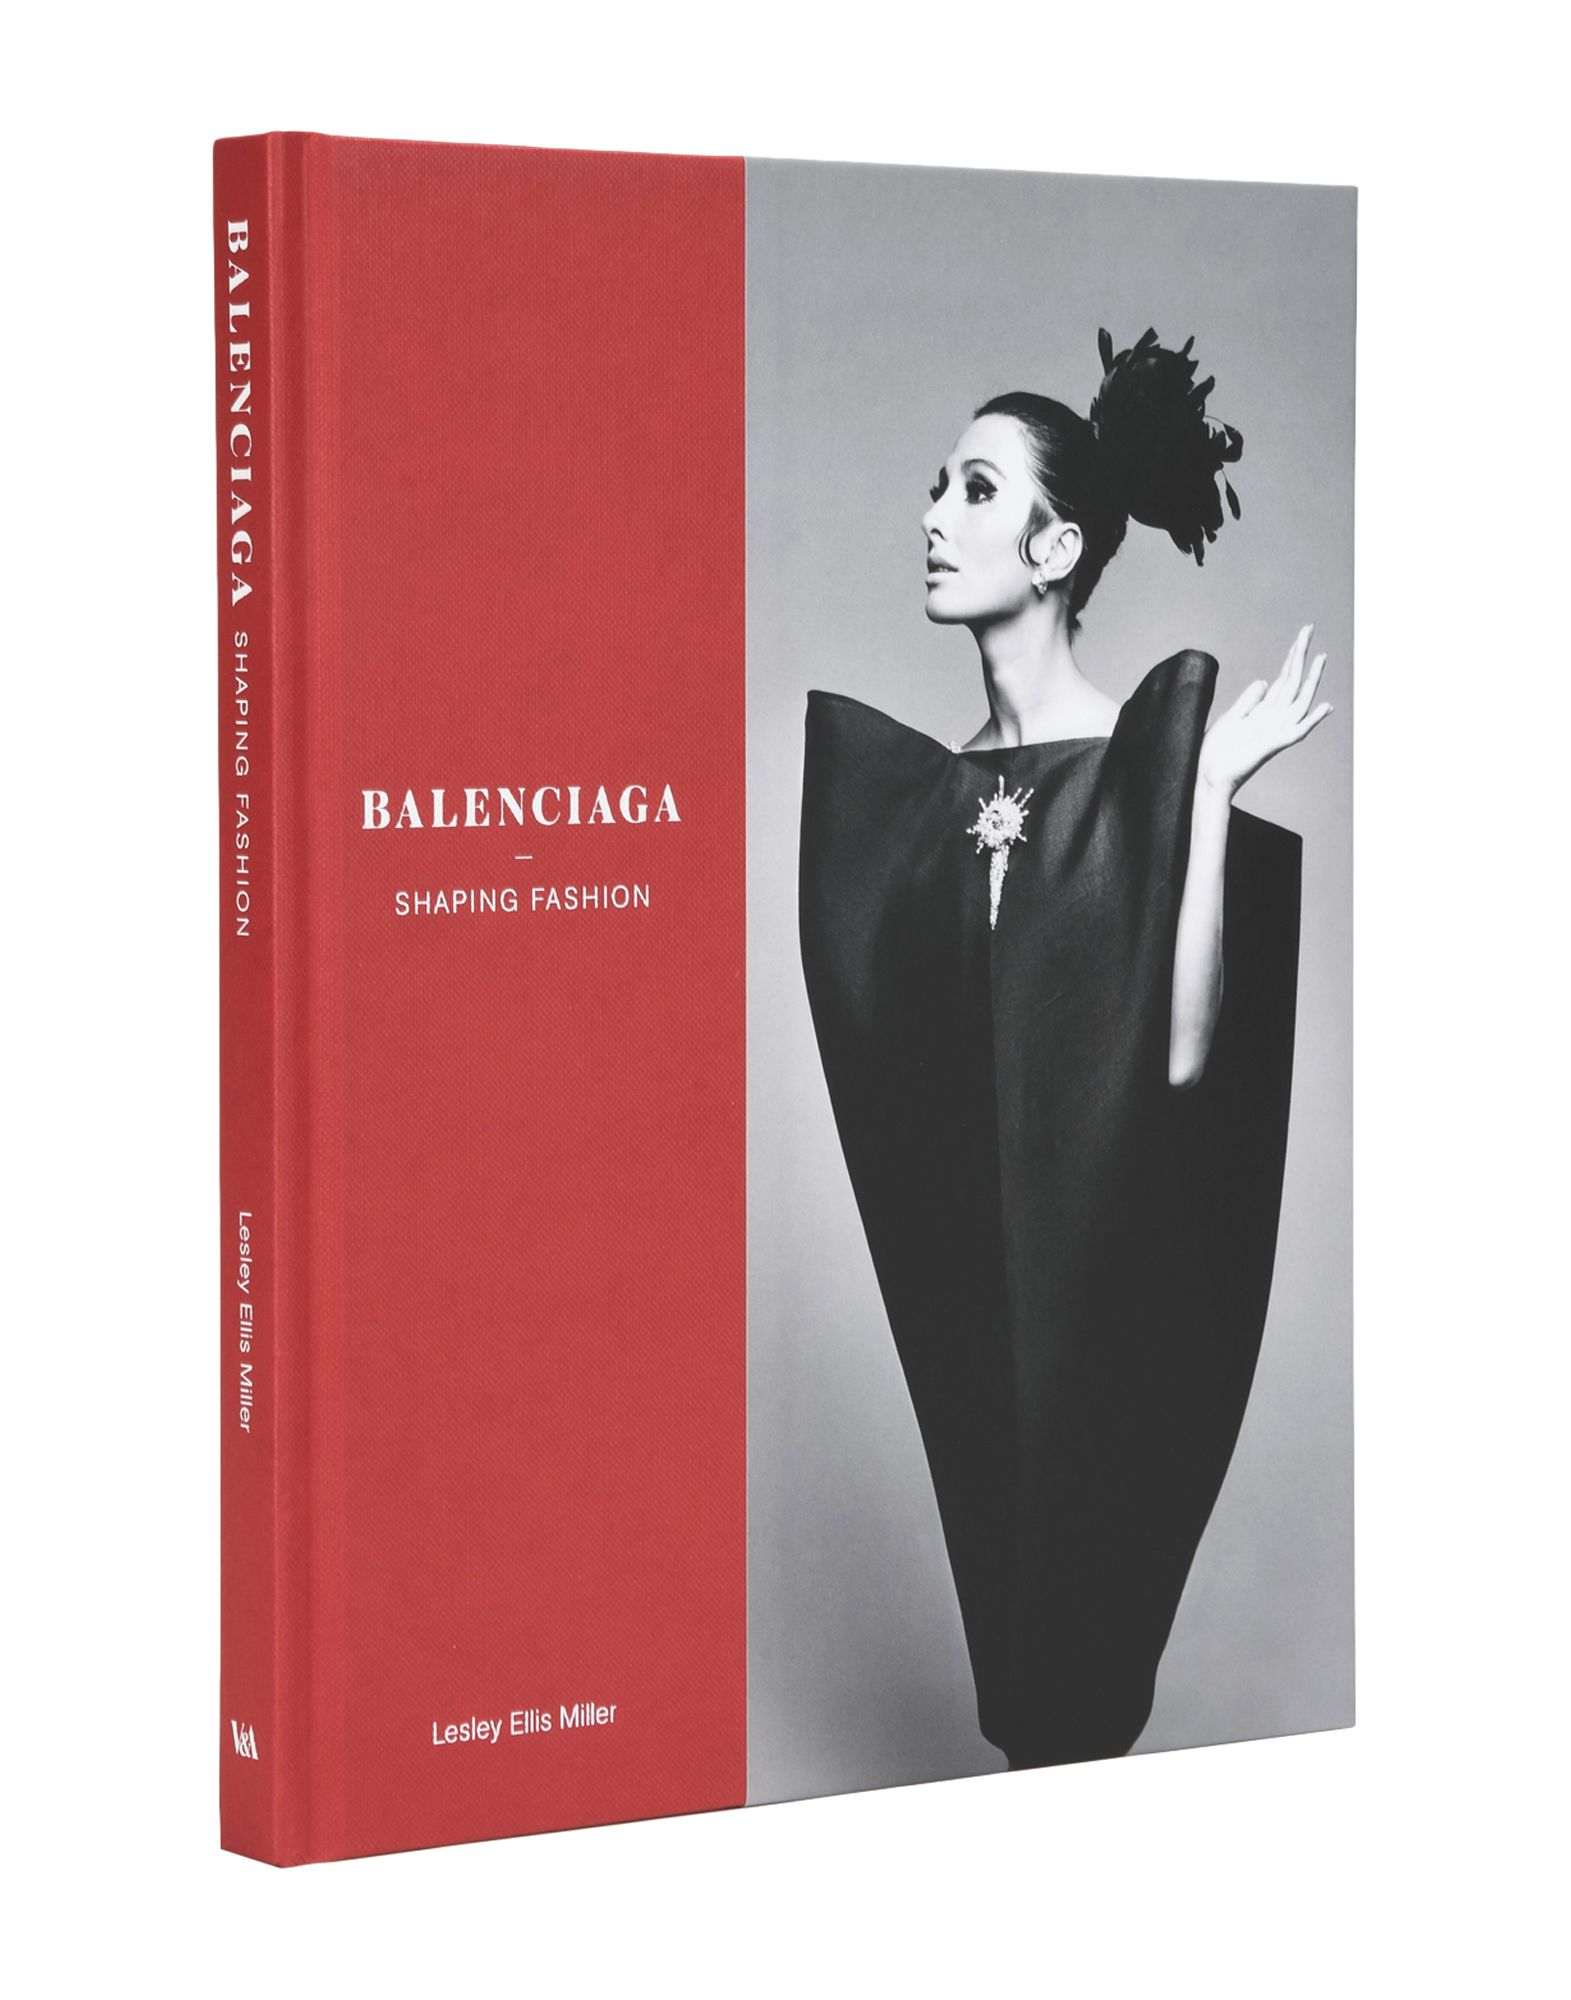 fashion design books for fashion students the best design books Vu0026A PUBLISHING. Balenciaga Shaping Fashion [-]. Fashion Book